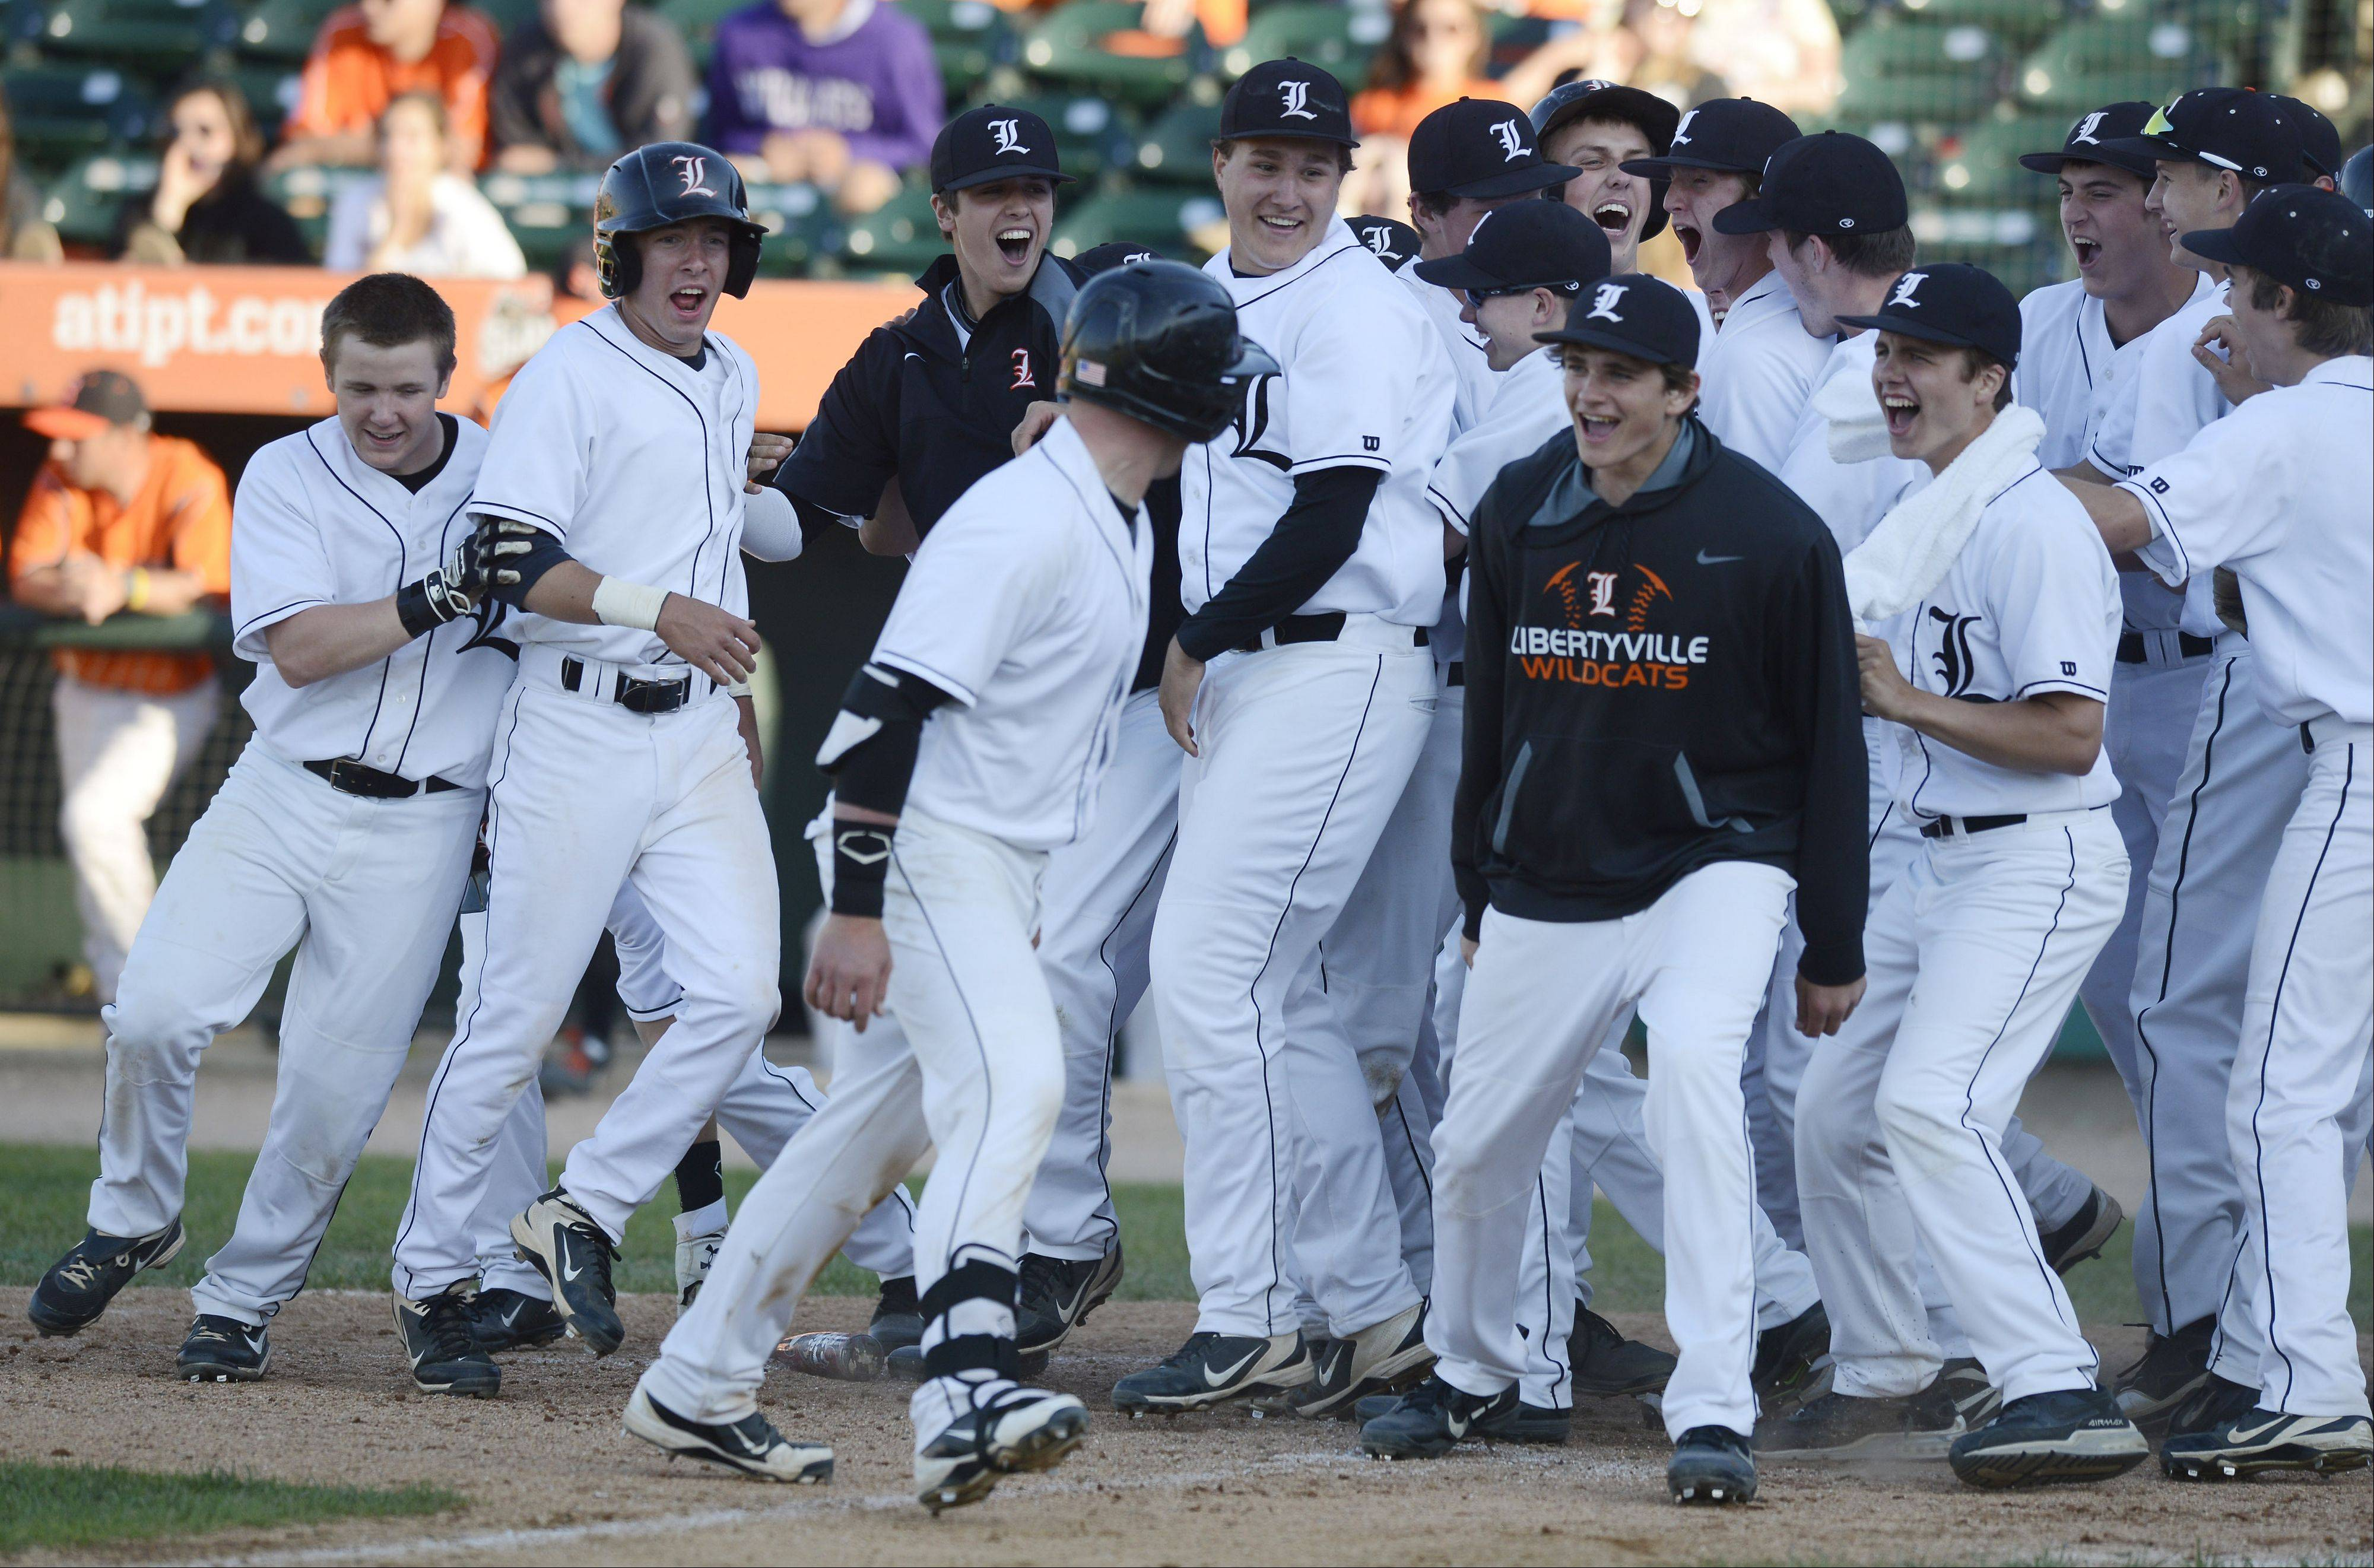 Libertyville's Evan Skoug is greeted at the plate by his teammates after hitting a fourth-inning grand slam against St. Charles East during the Class 4A state baseball semifinals at Silver Cross Field in Joliet Friday.